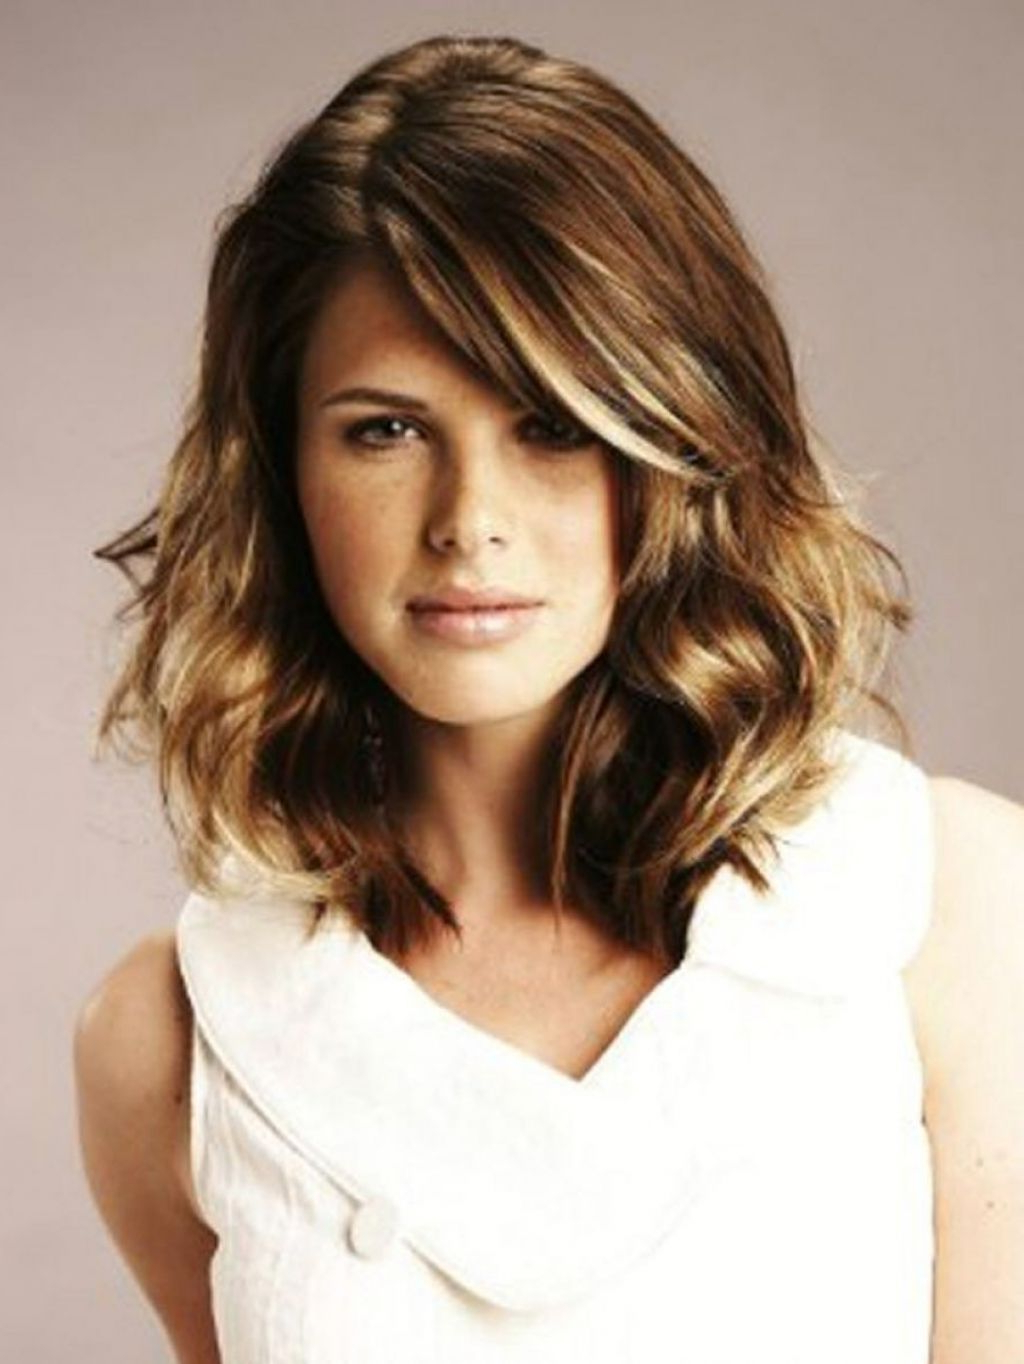 Hair Cuts : Best Bob Haircuts For Thick Curly Hair Medium Cuts Wavy Within Well Known Medium Haircuts With Curly Hair (View 10 of 20)